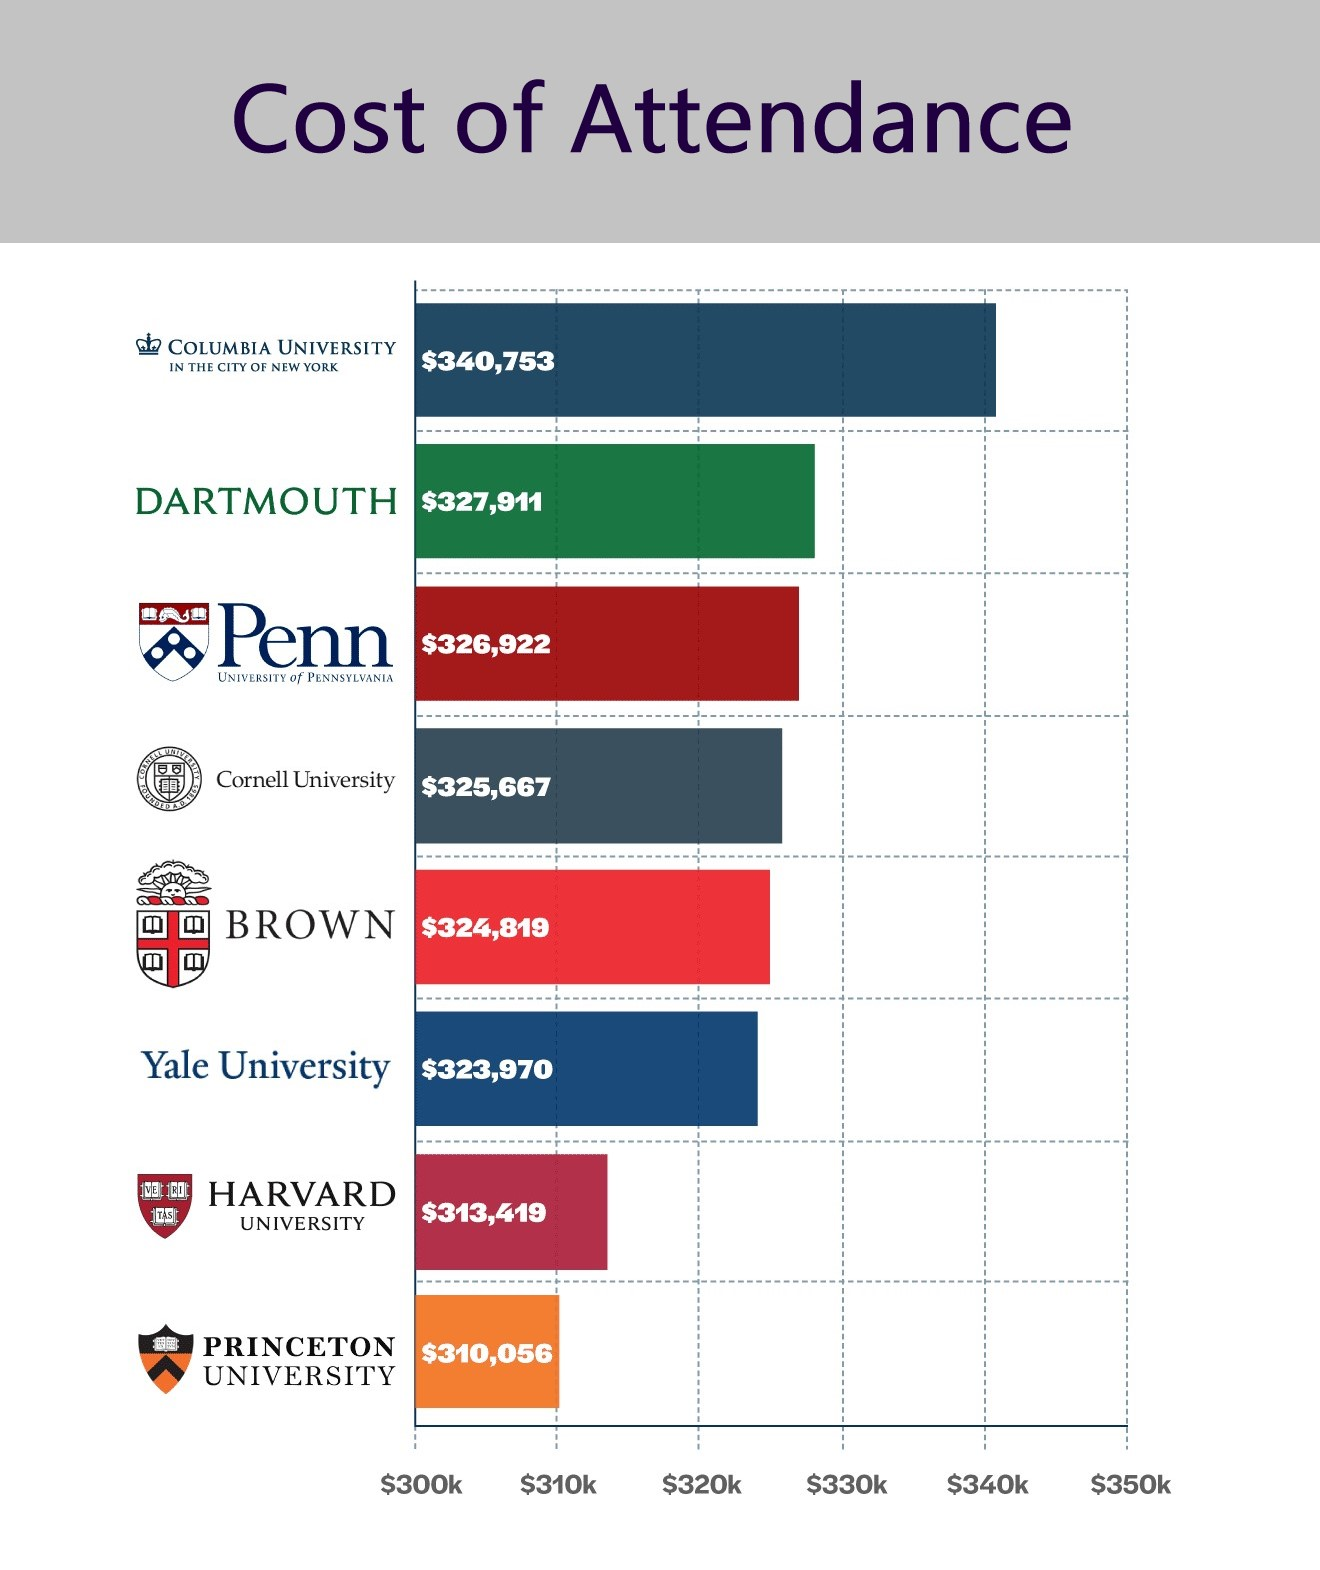 cost-attendance-ivy-league-colleges.jpg